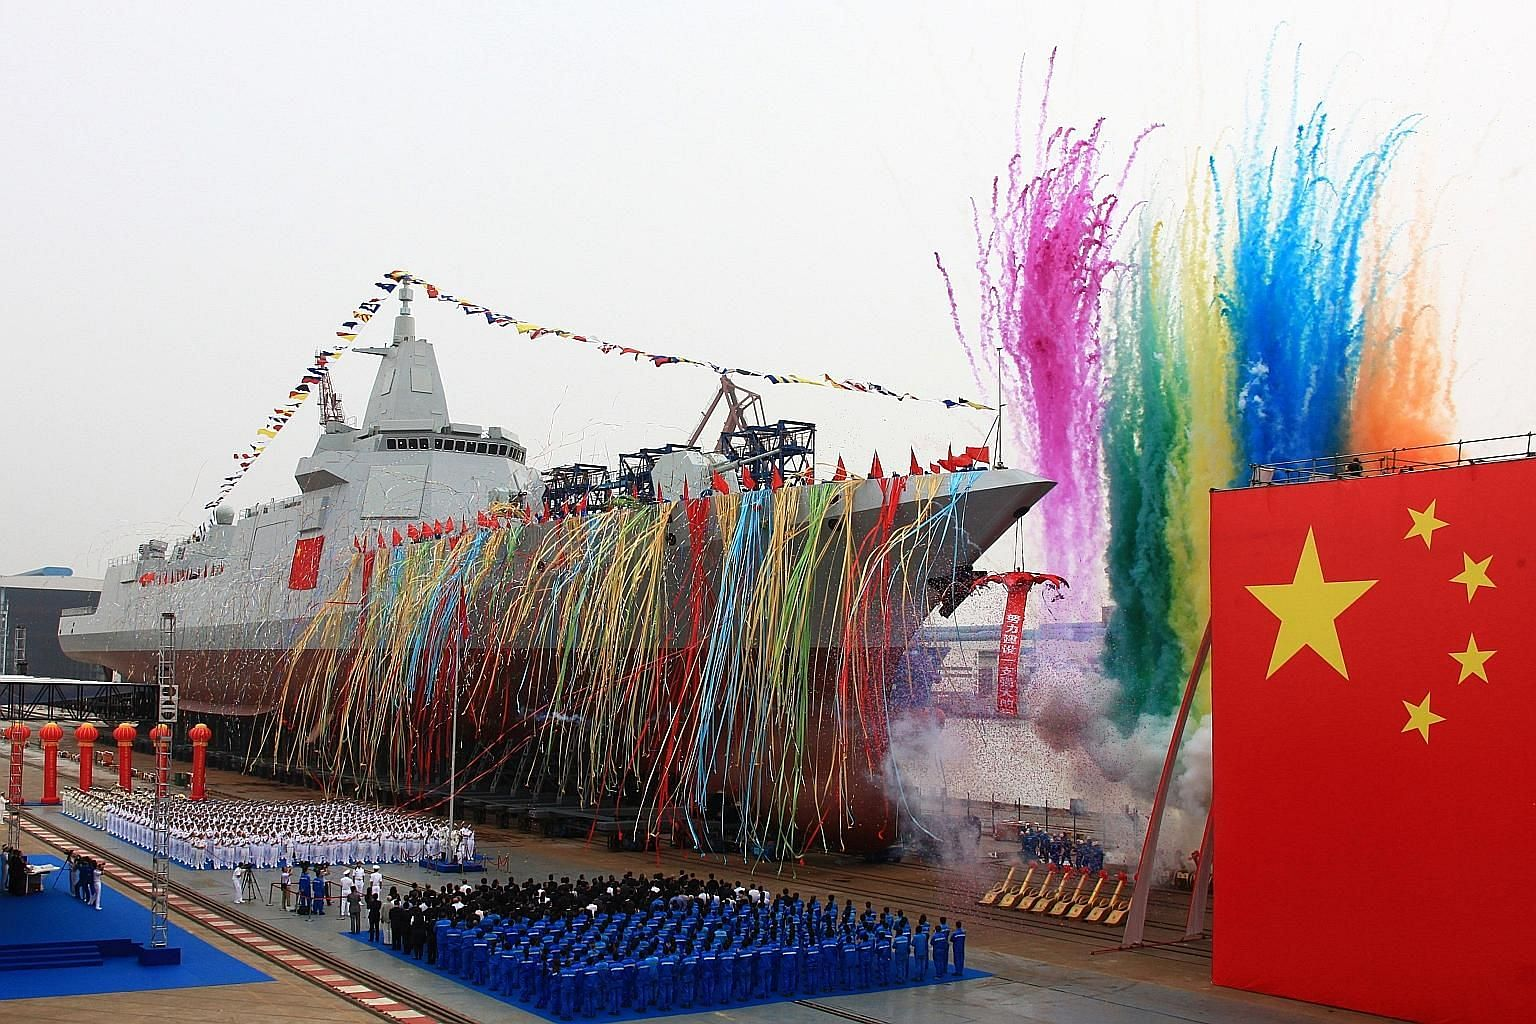 China's new 10,000-ton warship being launched at Jiangnan Shipyard in Shanghai yesterday. Said to be the first Type 055 destroyer, it is equipped with new air defence, anti-missile, anti-ship and anti-submarine weapons.